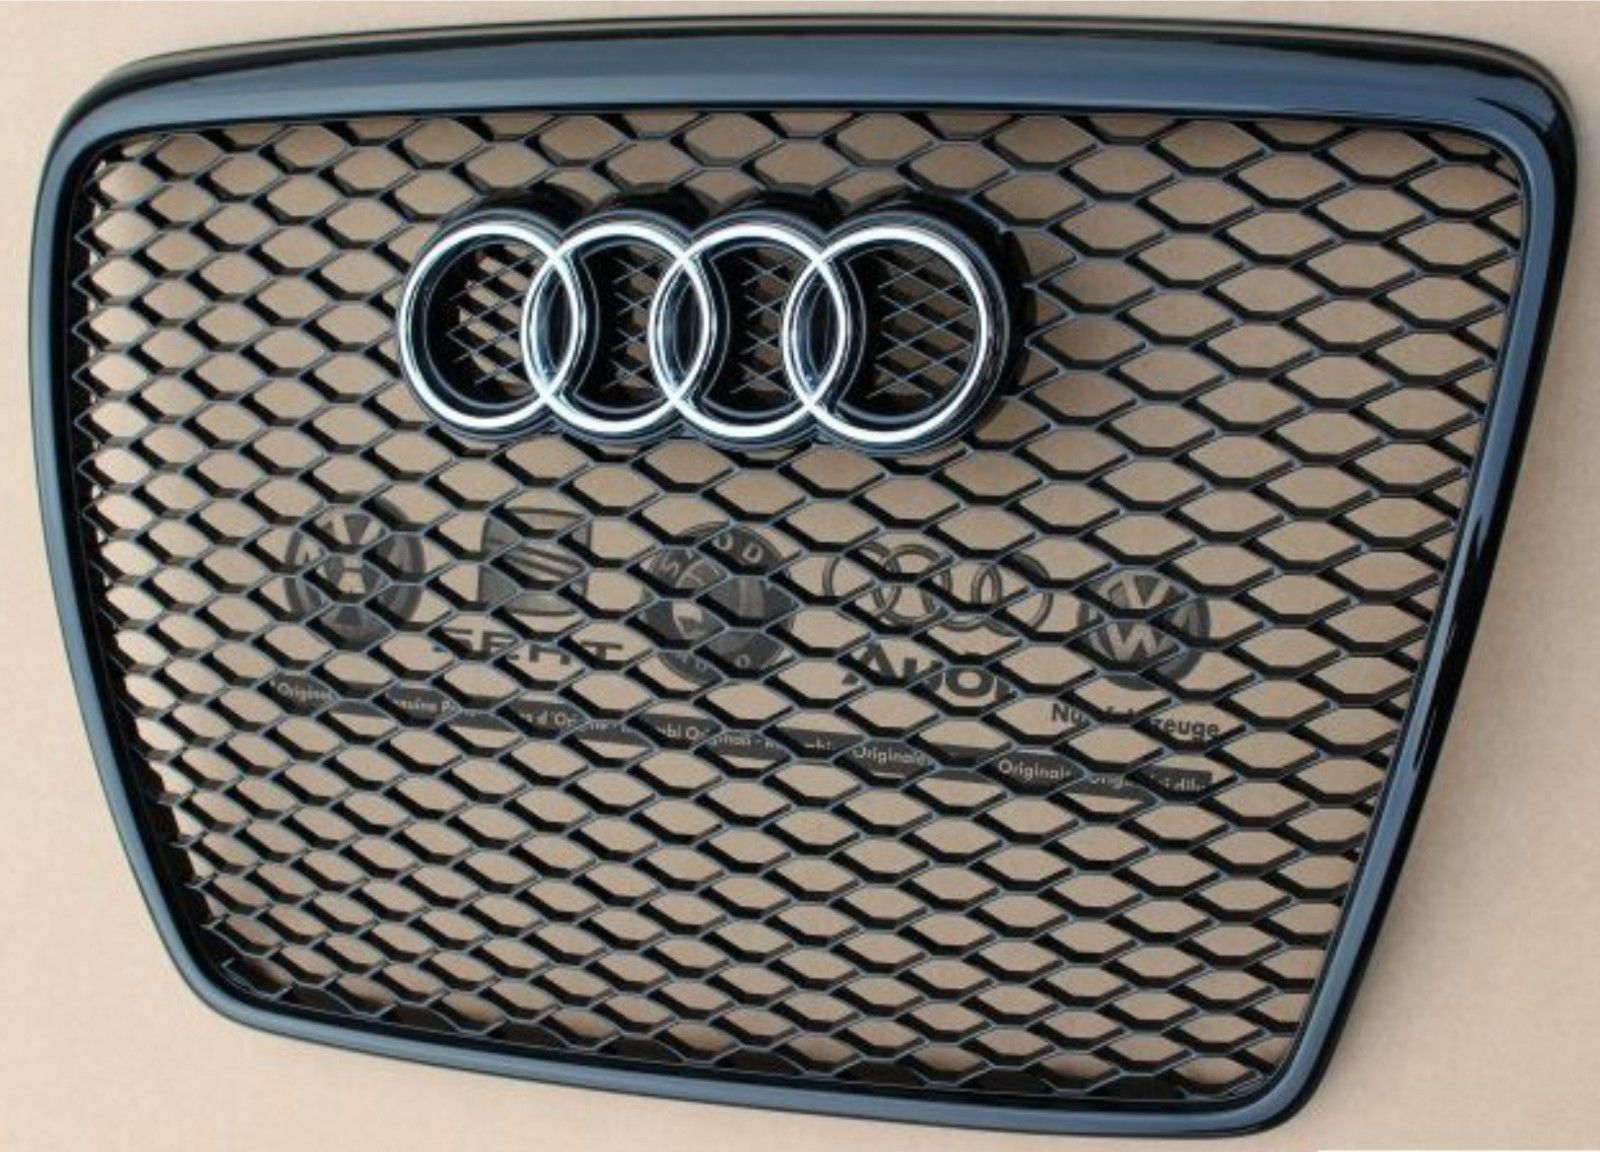 audi a6 rs6 grill piano black grille a6 s6 c6 4f 2004 2011 genuine new ebay audi a6 audi. Black Bedroom Furniture Sets. Home Design Ideas